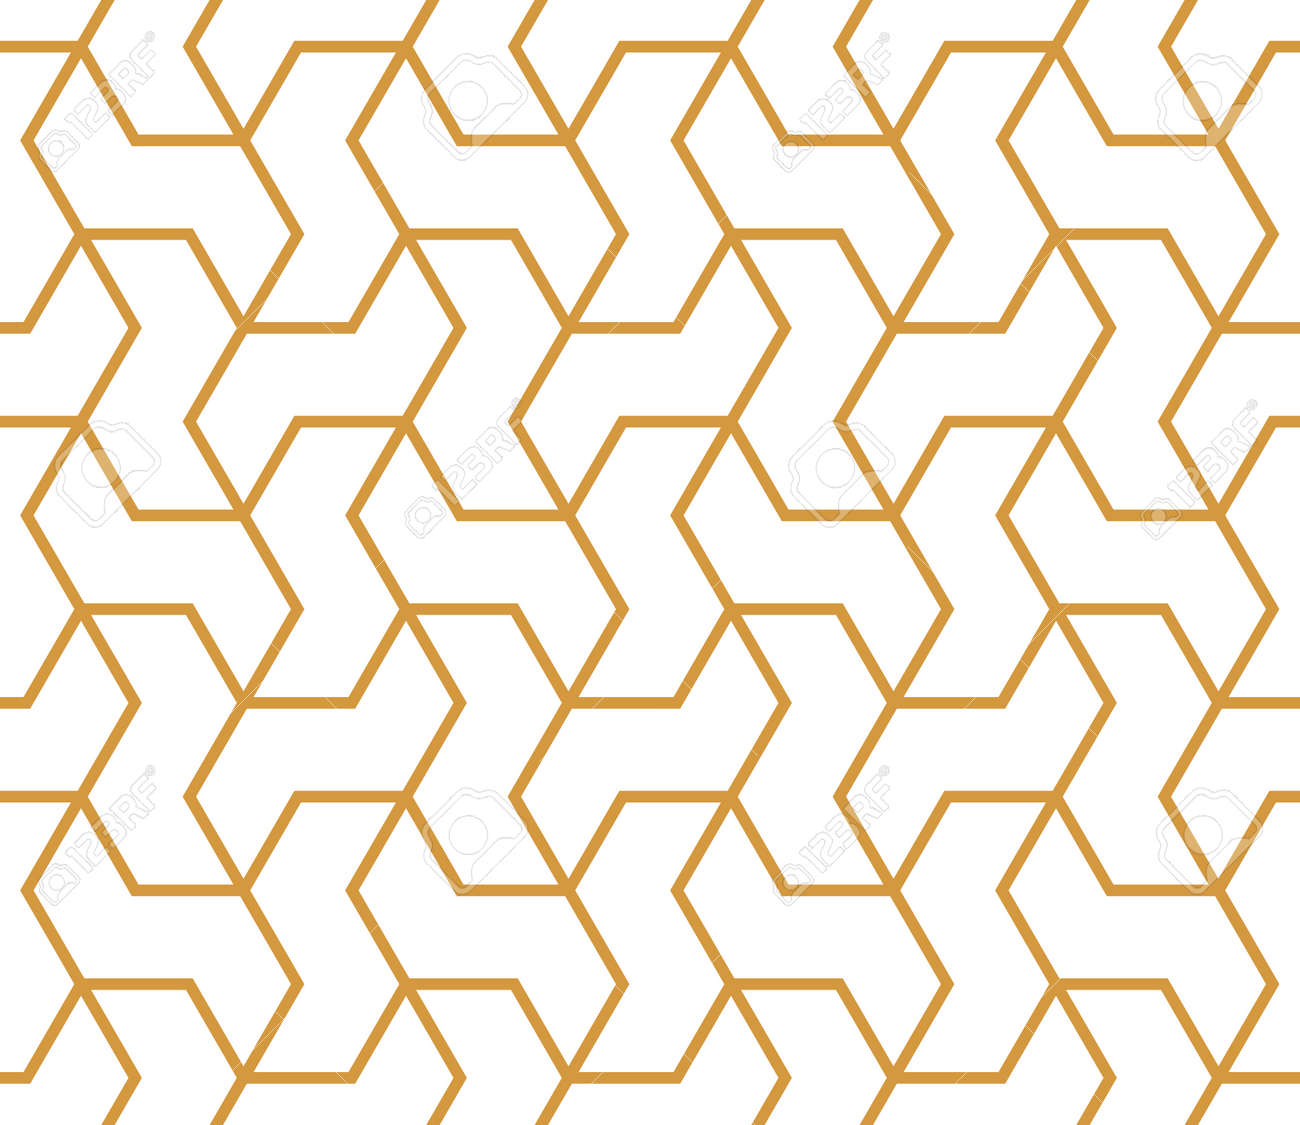 The geometric pattern with lines. Seamless vector background. White and gold texture. Graphic modern pattern. Simple lattice graphic design - 168019209